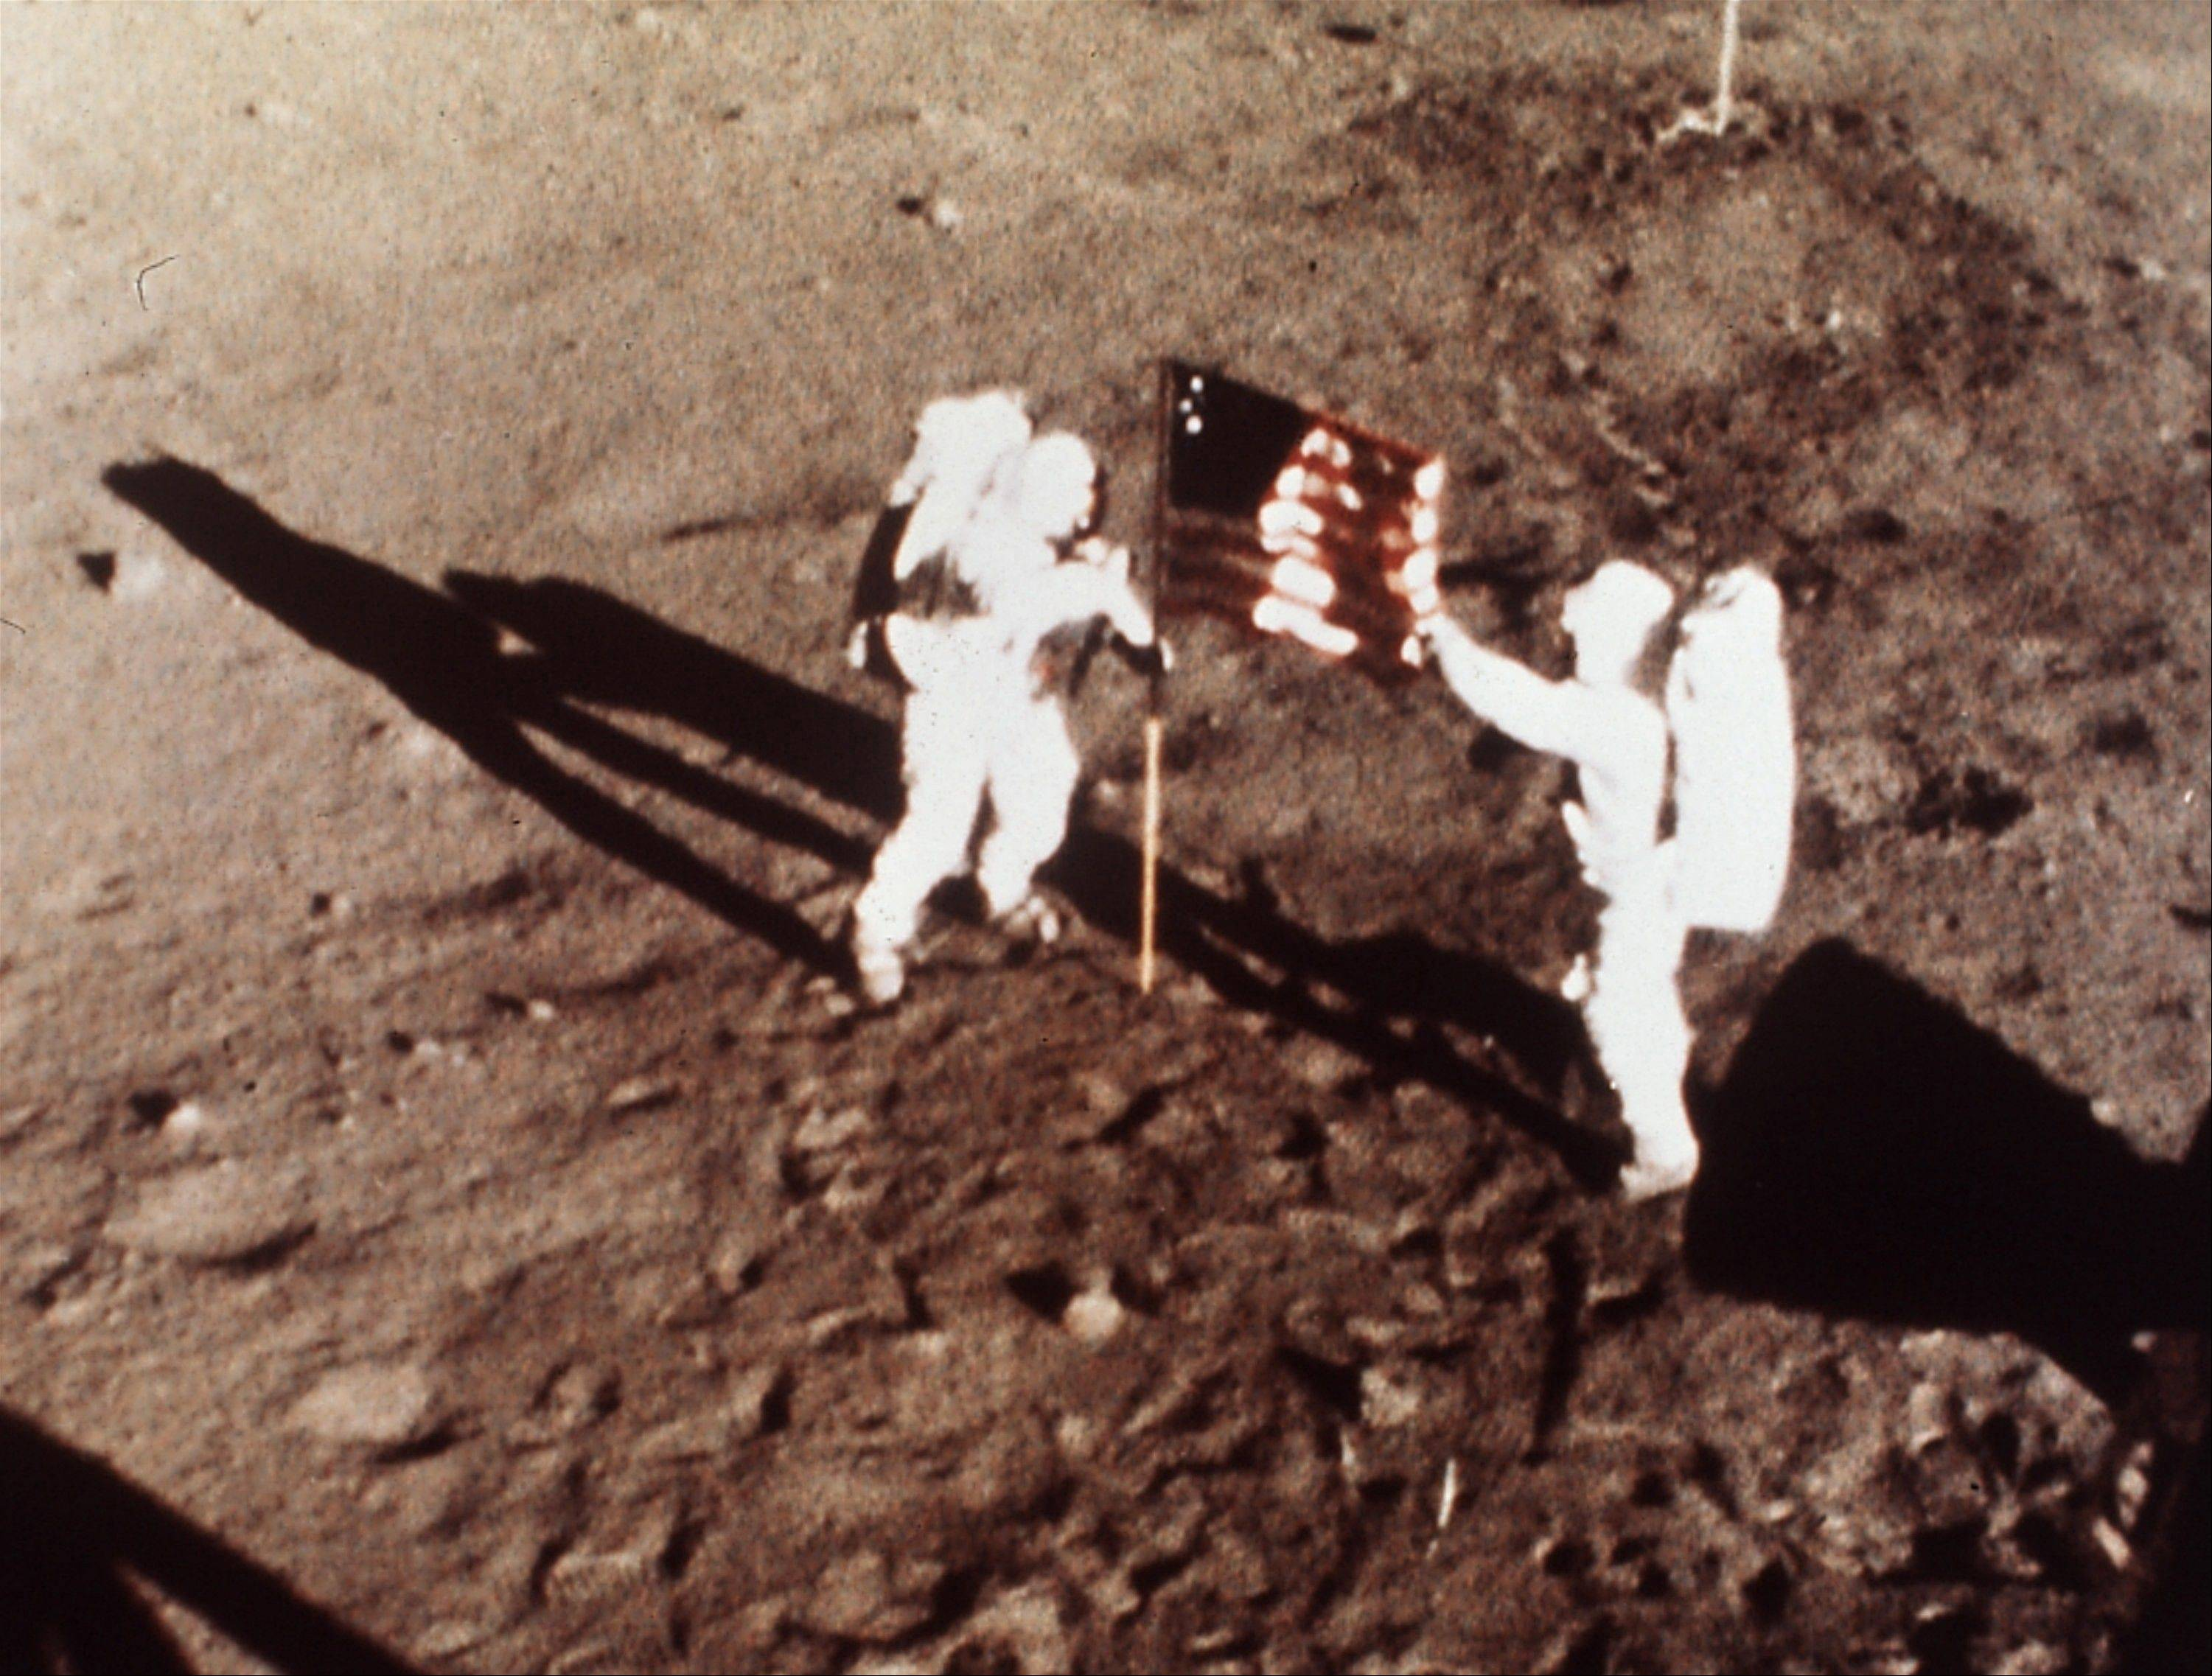 "In this July 20, 1969 file photo provided by NASA shows Apollo 11 astronauts Neil Armstrong and Edwin E. ""Buzz"" Aldrin, the first men to land on the moon, plant the U.S. flag on the lunar surface. The family of Neil Armstrong, the first man to walk on the moon, says he has died at age 82. A statement from the family says he died following complications resulting from cardiovascular procedures. It doesn't say where he died. Armstrong commanded the Apollo 11 spacecraft that landed on the moon July 20, 1969. He radioed back to Earth the historic news of ""one giant leap for mankind."" Armstrong and fellow astronaut Edwin ""Buzz"" Aldrin spent nearly three hours walking on the moon, collecting samples, conducting experiments and taking photographs. In all, 12 Americans walked on the moon from 1969 to 1972."